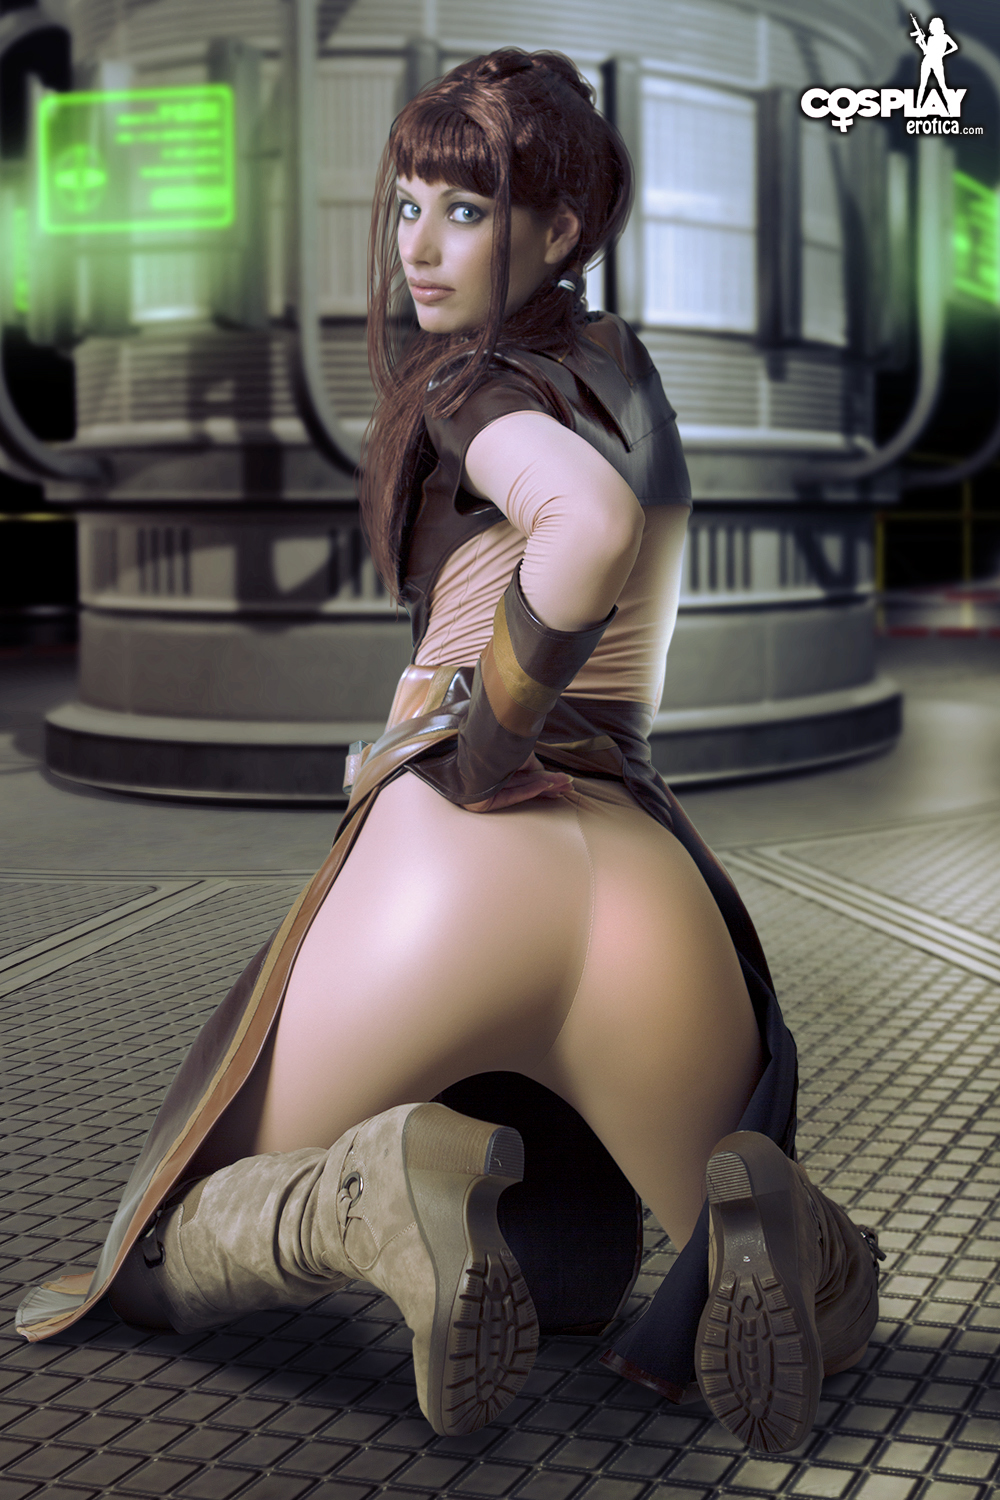 Cosplay naked star wars hentai images